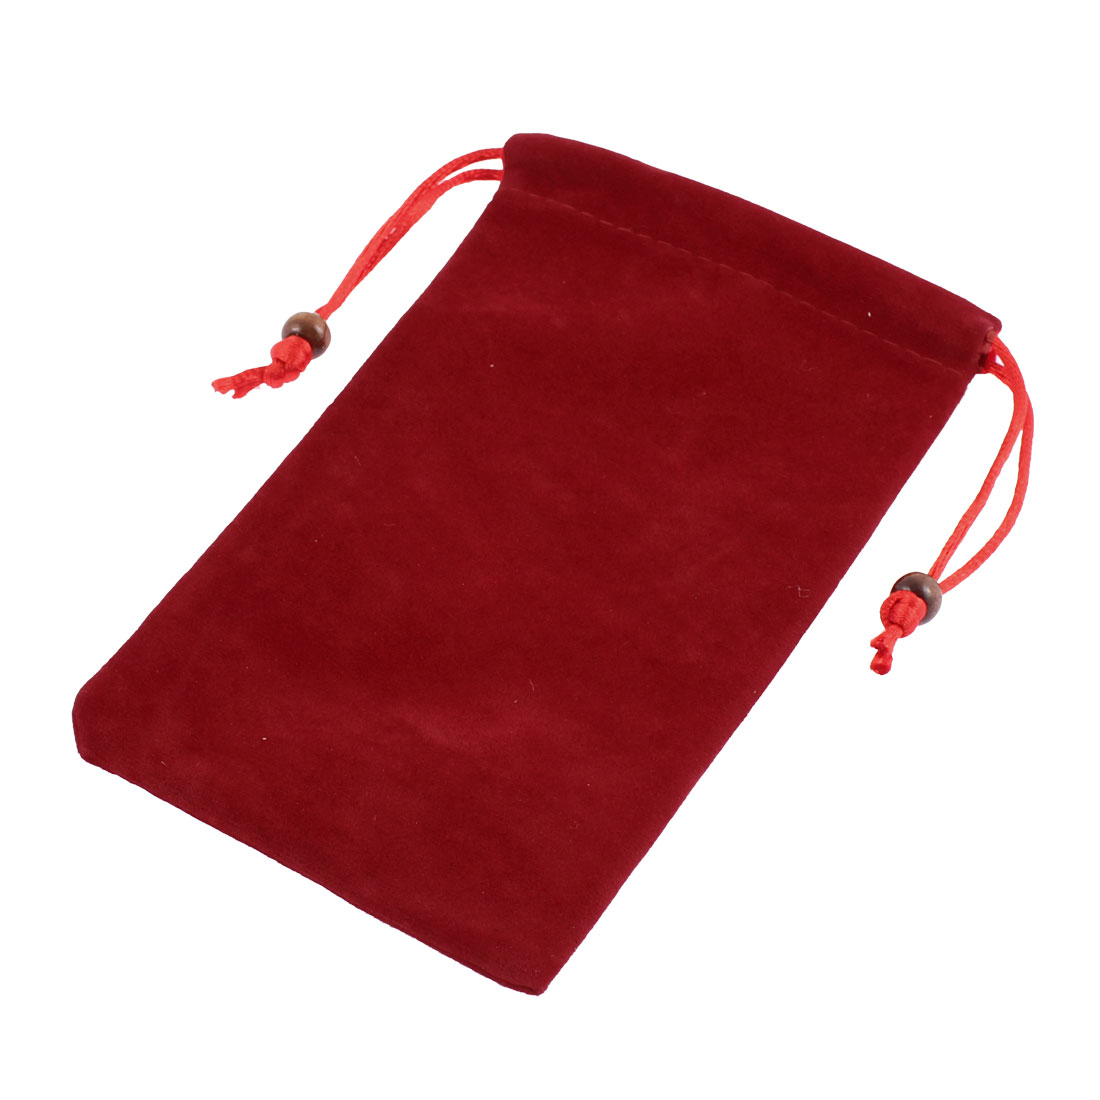 Drawstring Closure Cell Phone Pouch Sleeve Bag Case Dark Red 15.5 x 9.5cm